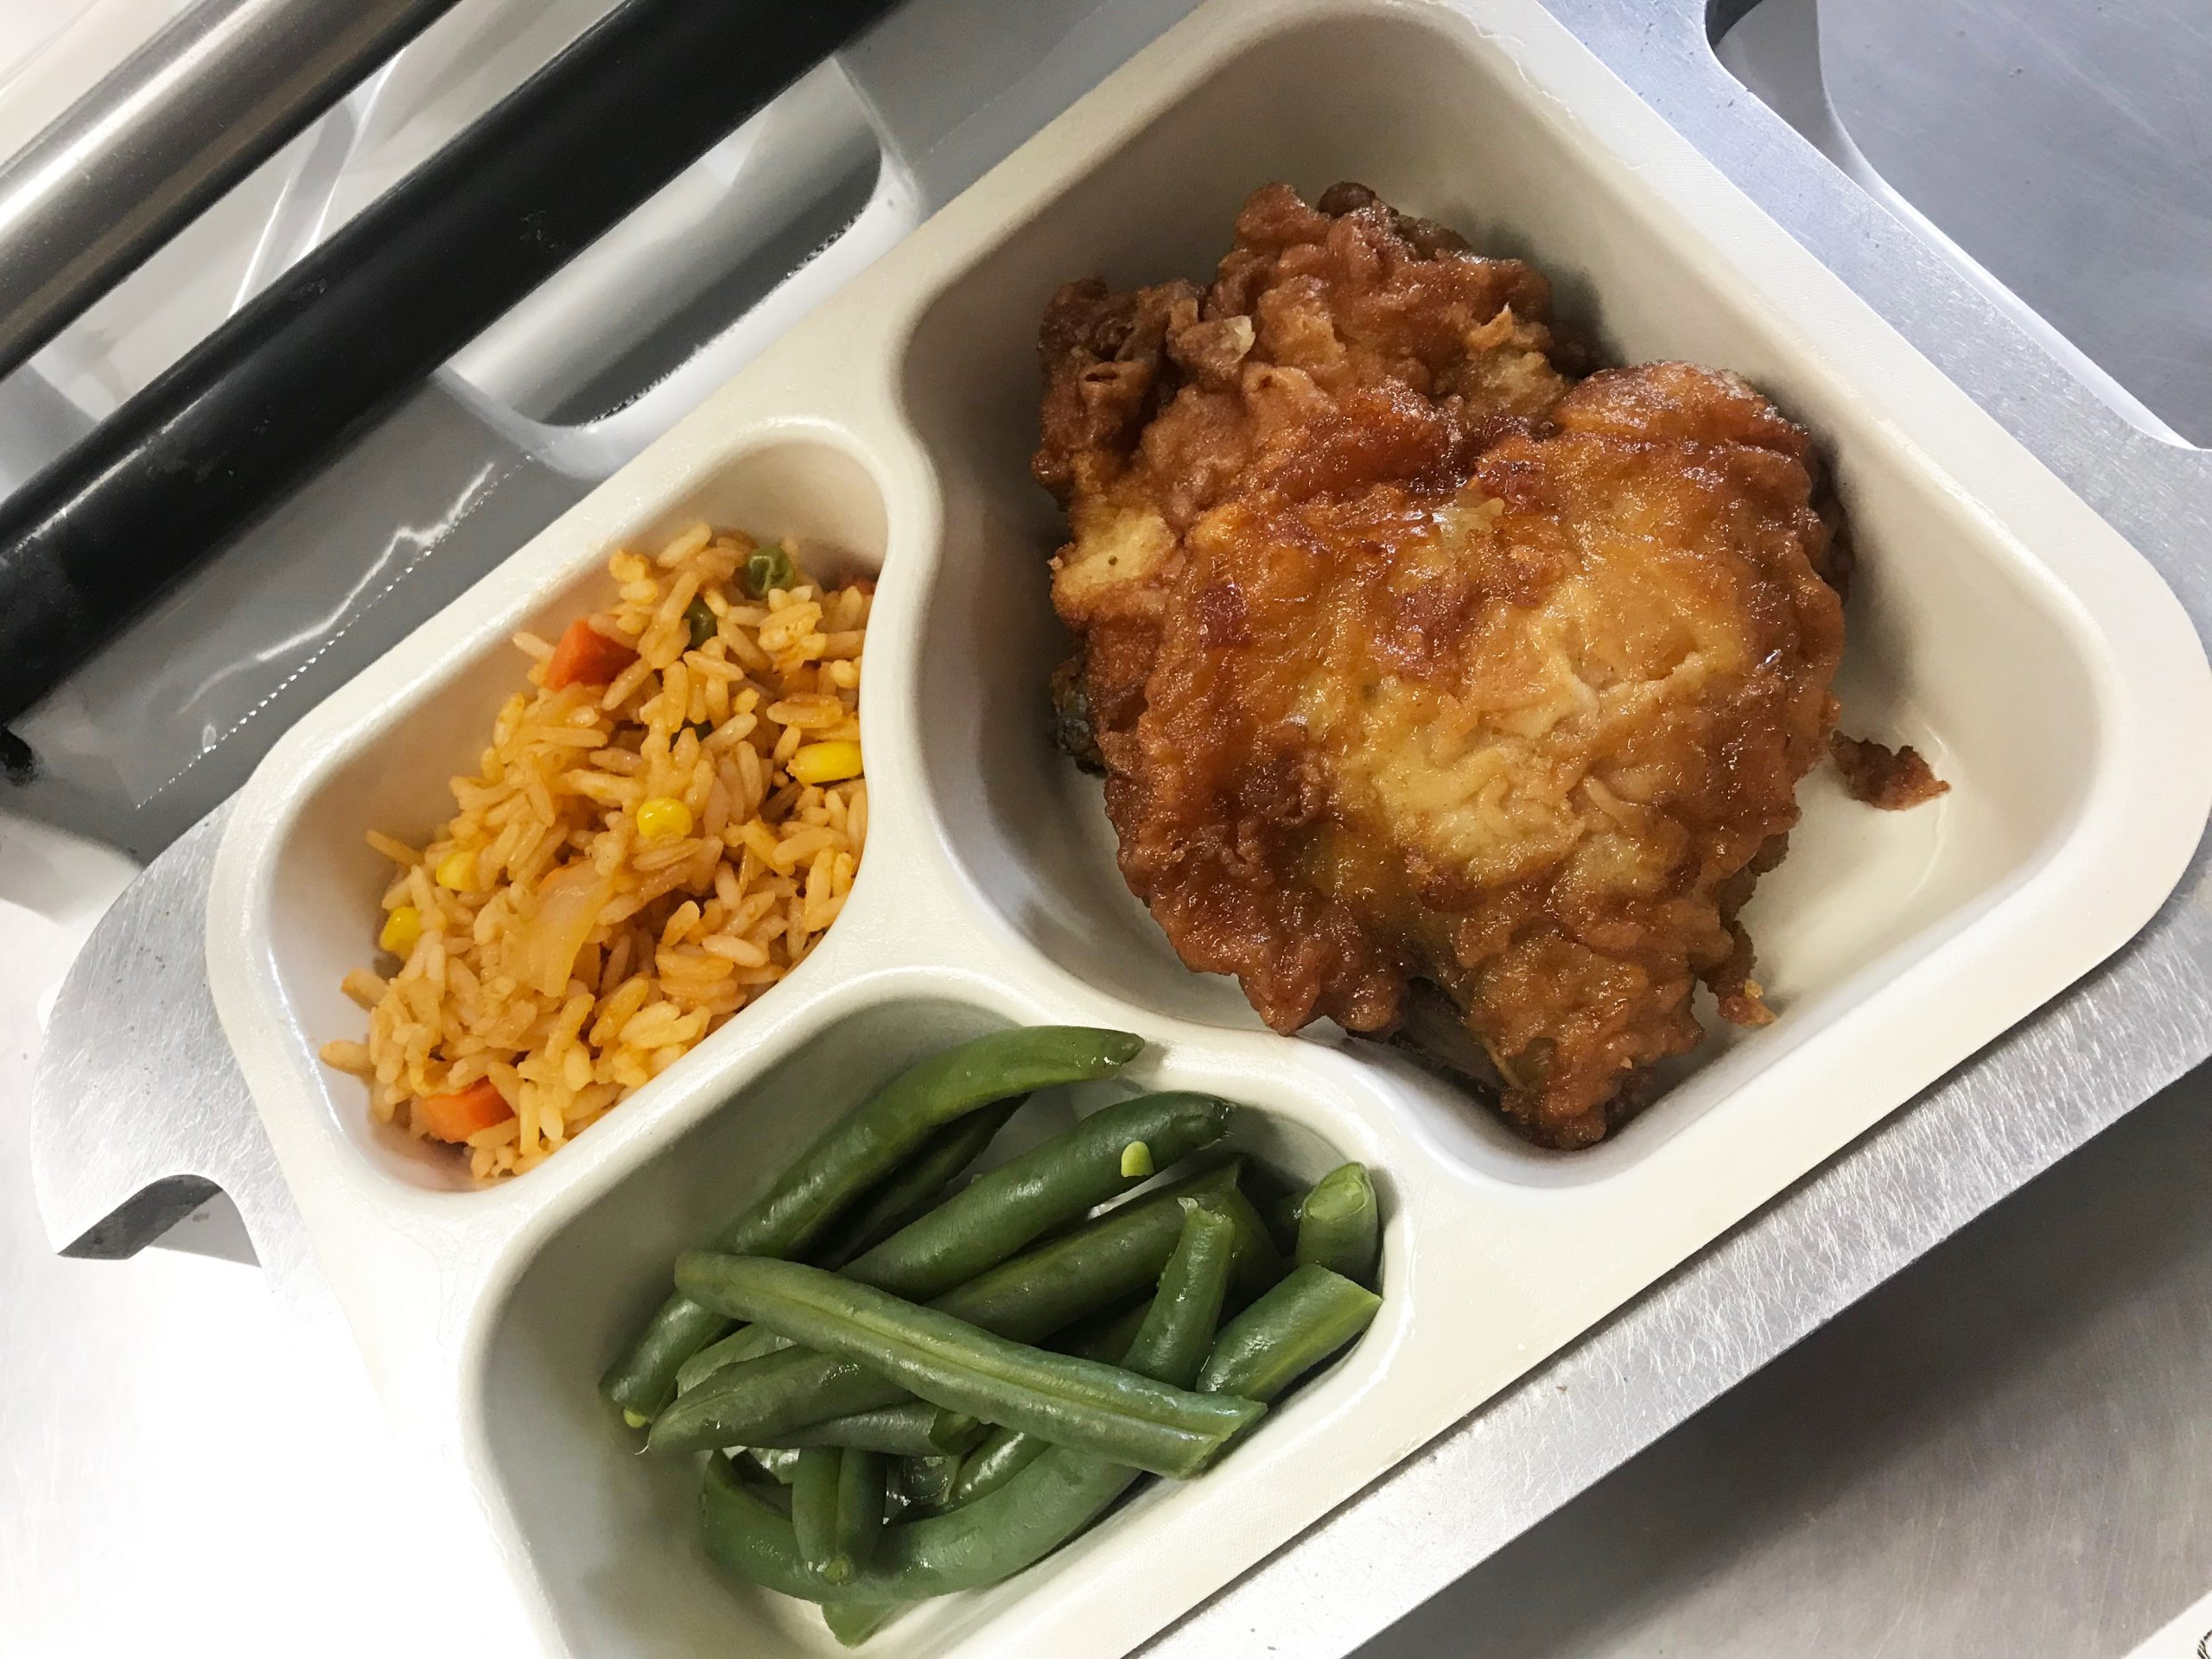 Fried chicken with green beans and rice